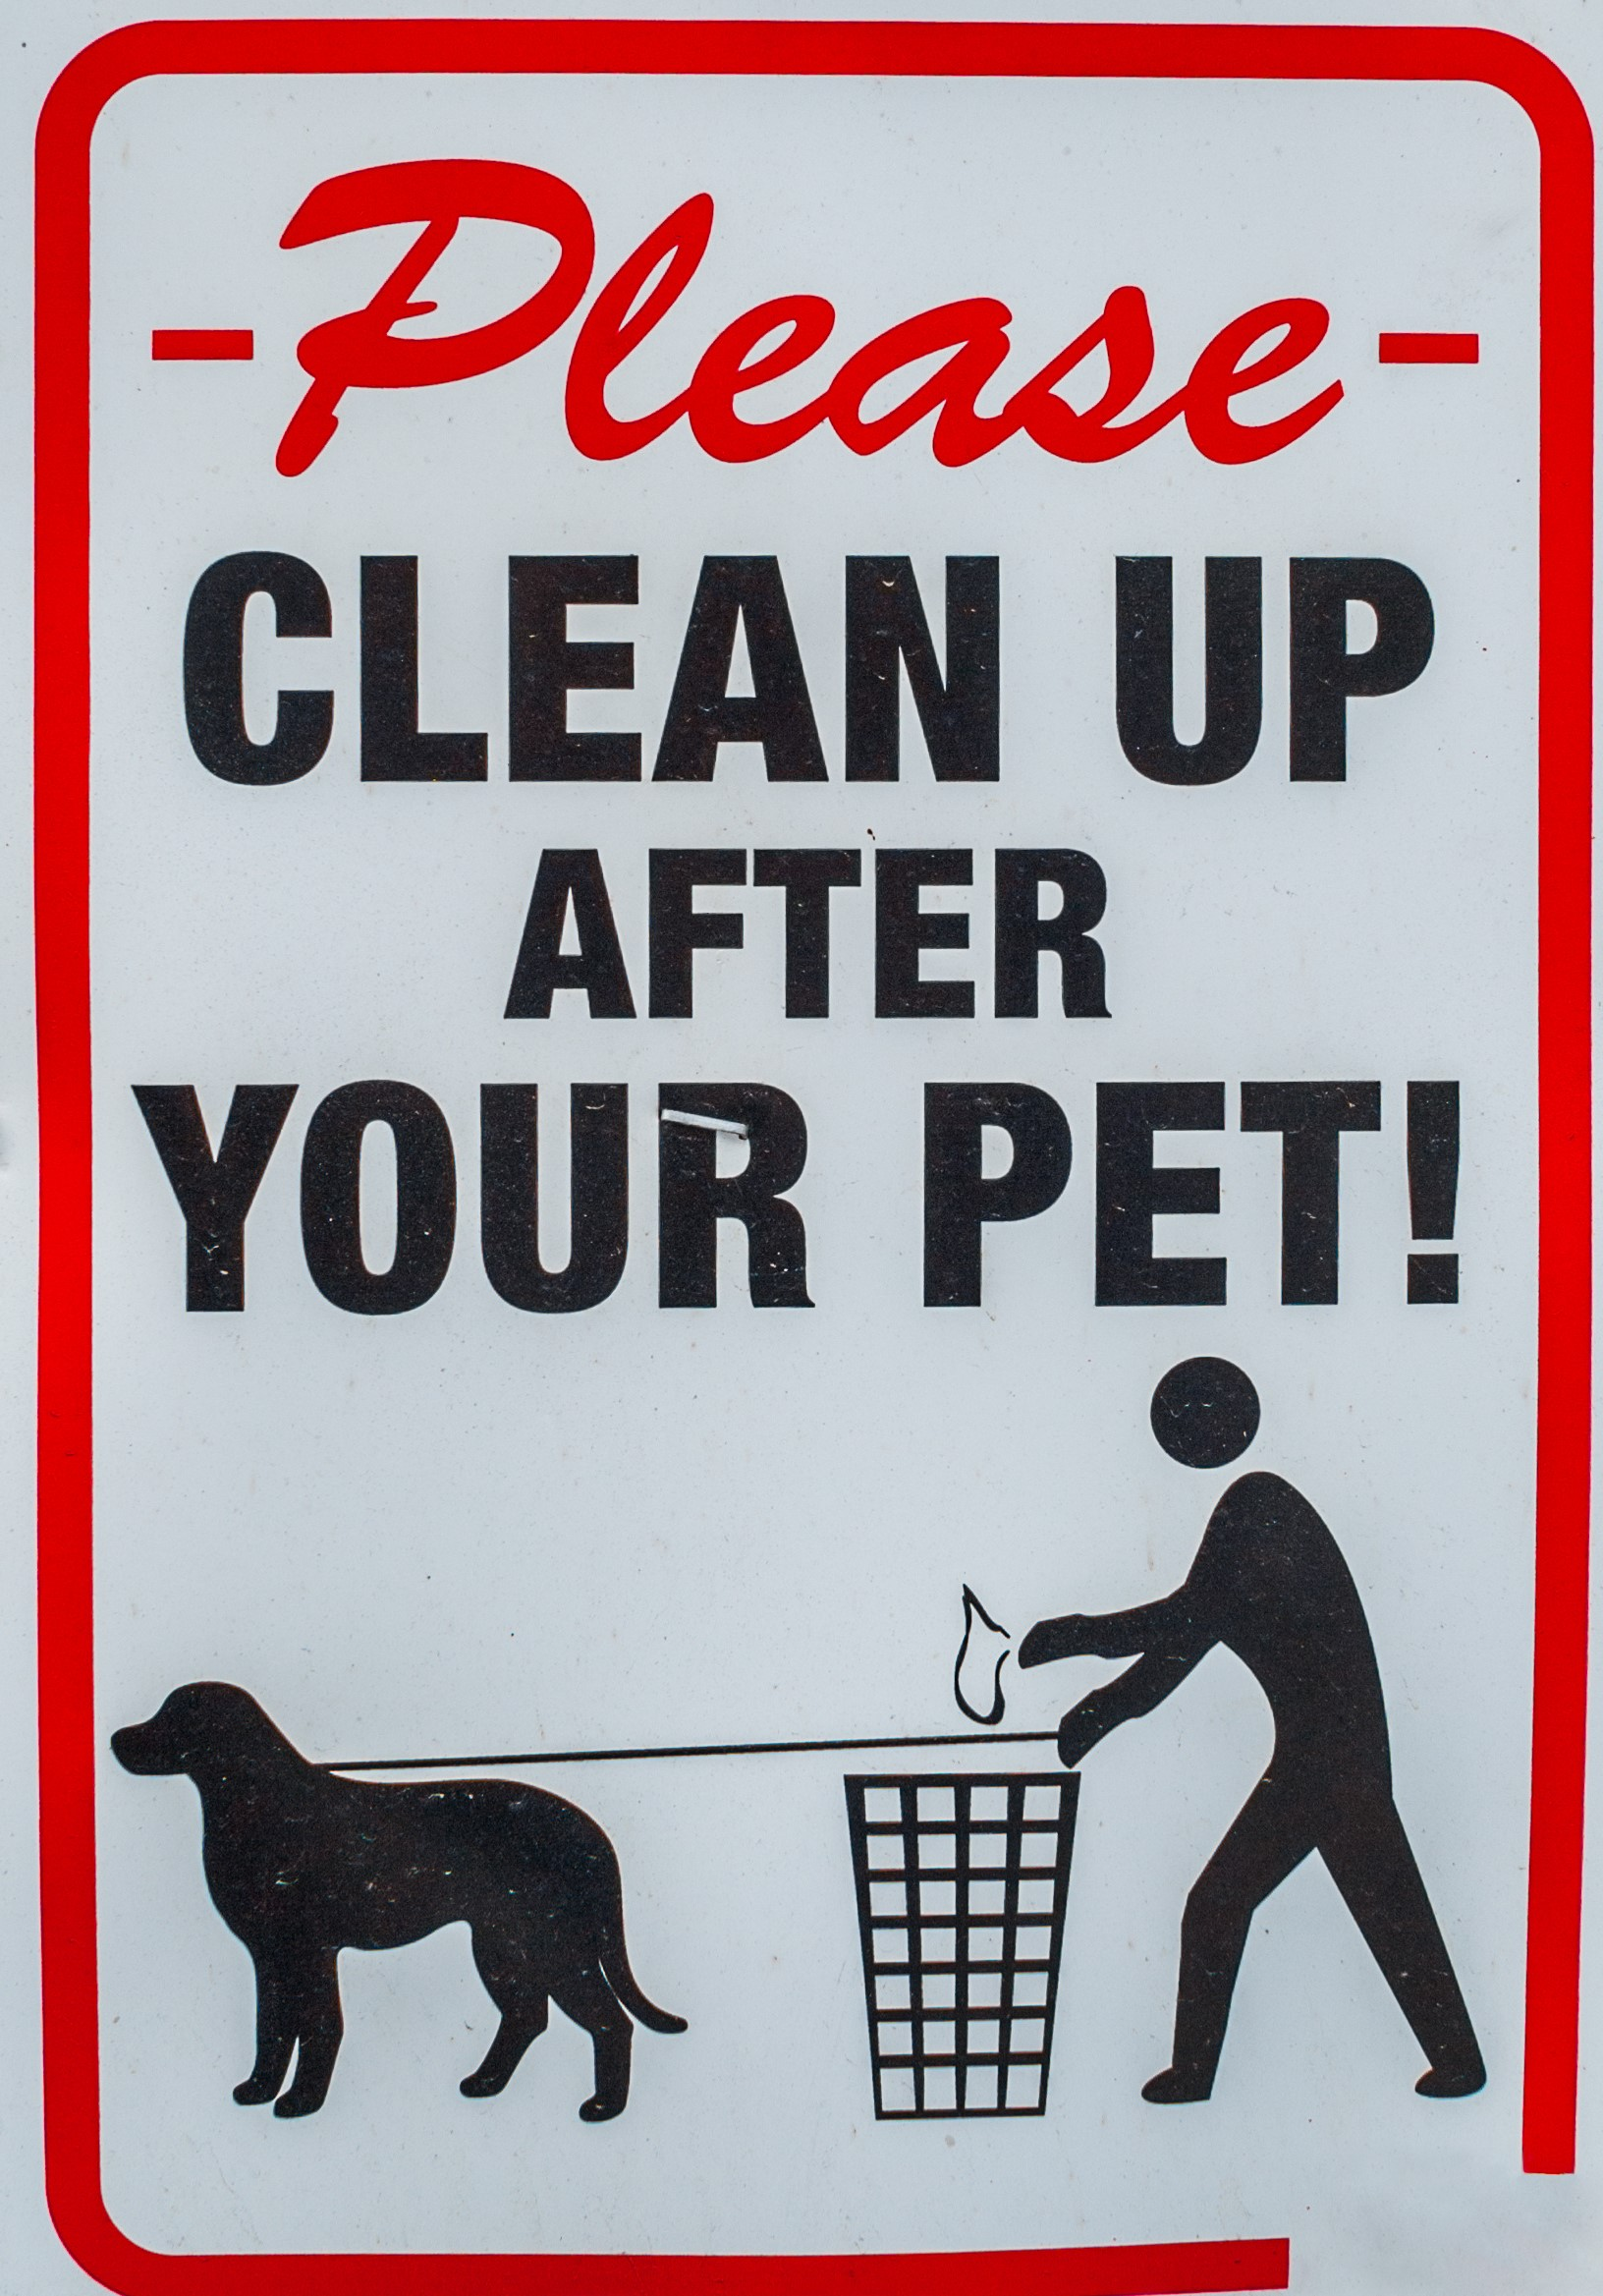 clean up after your pet image